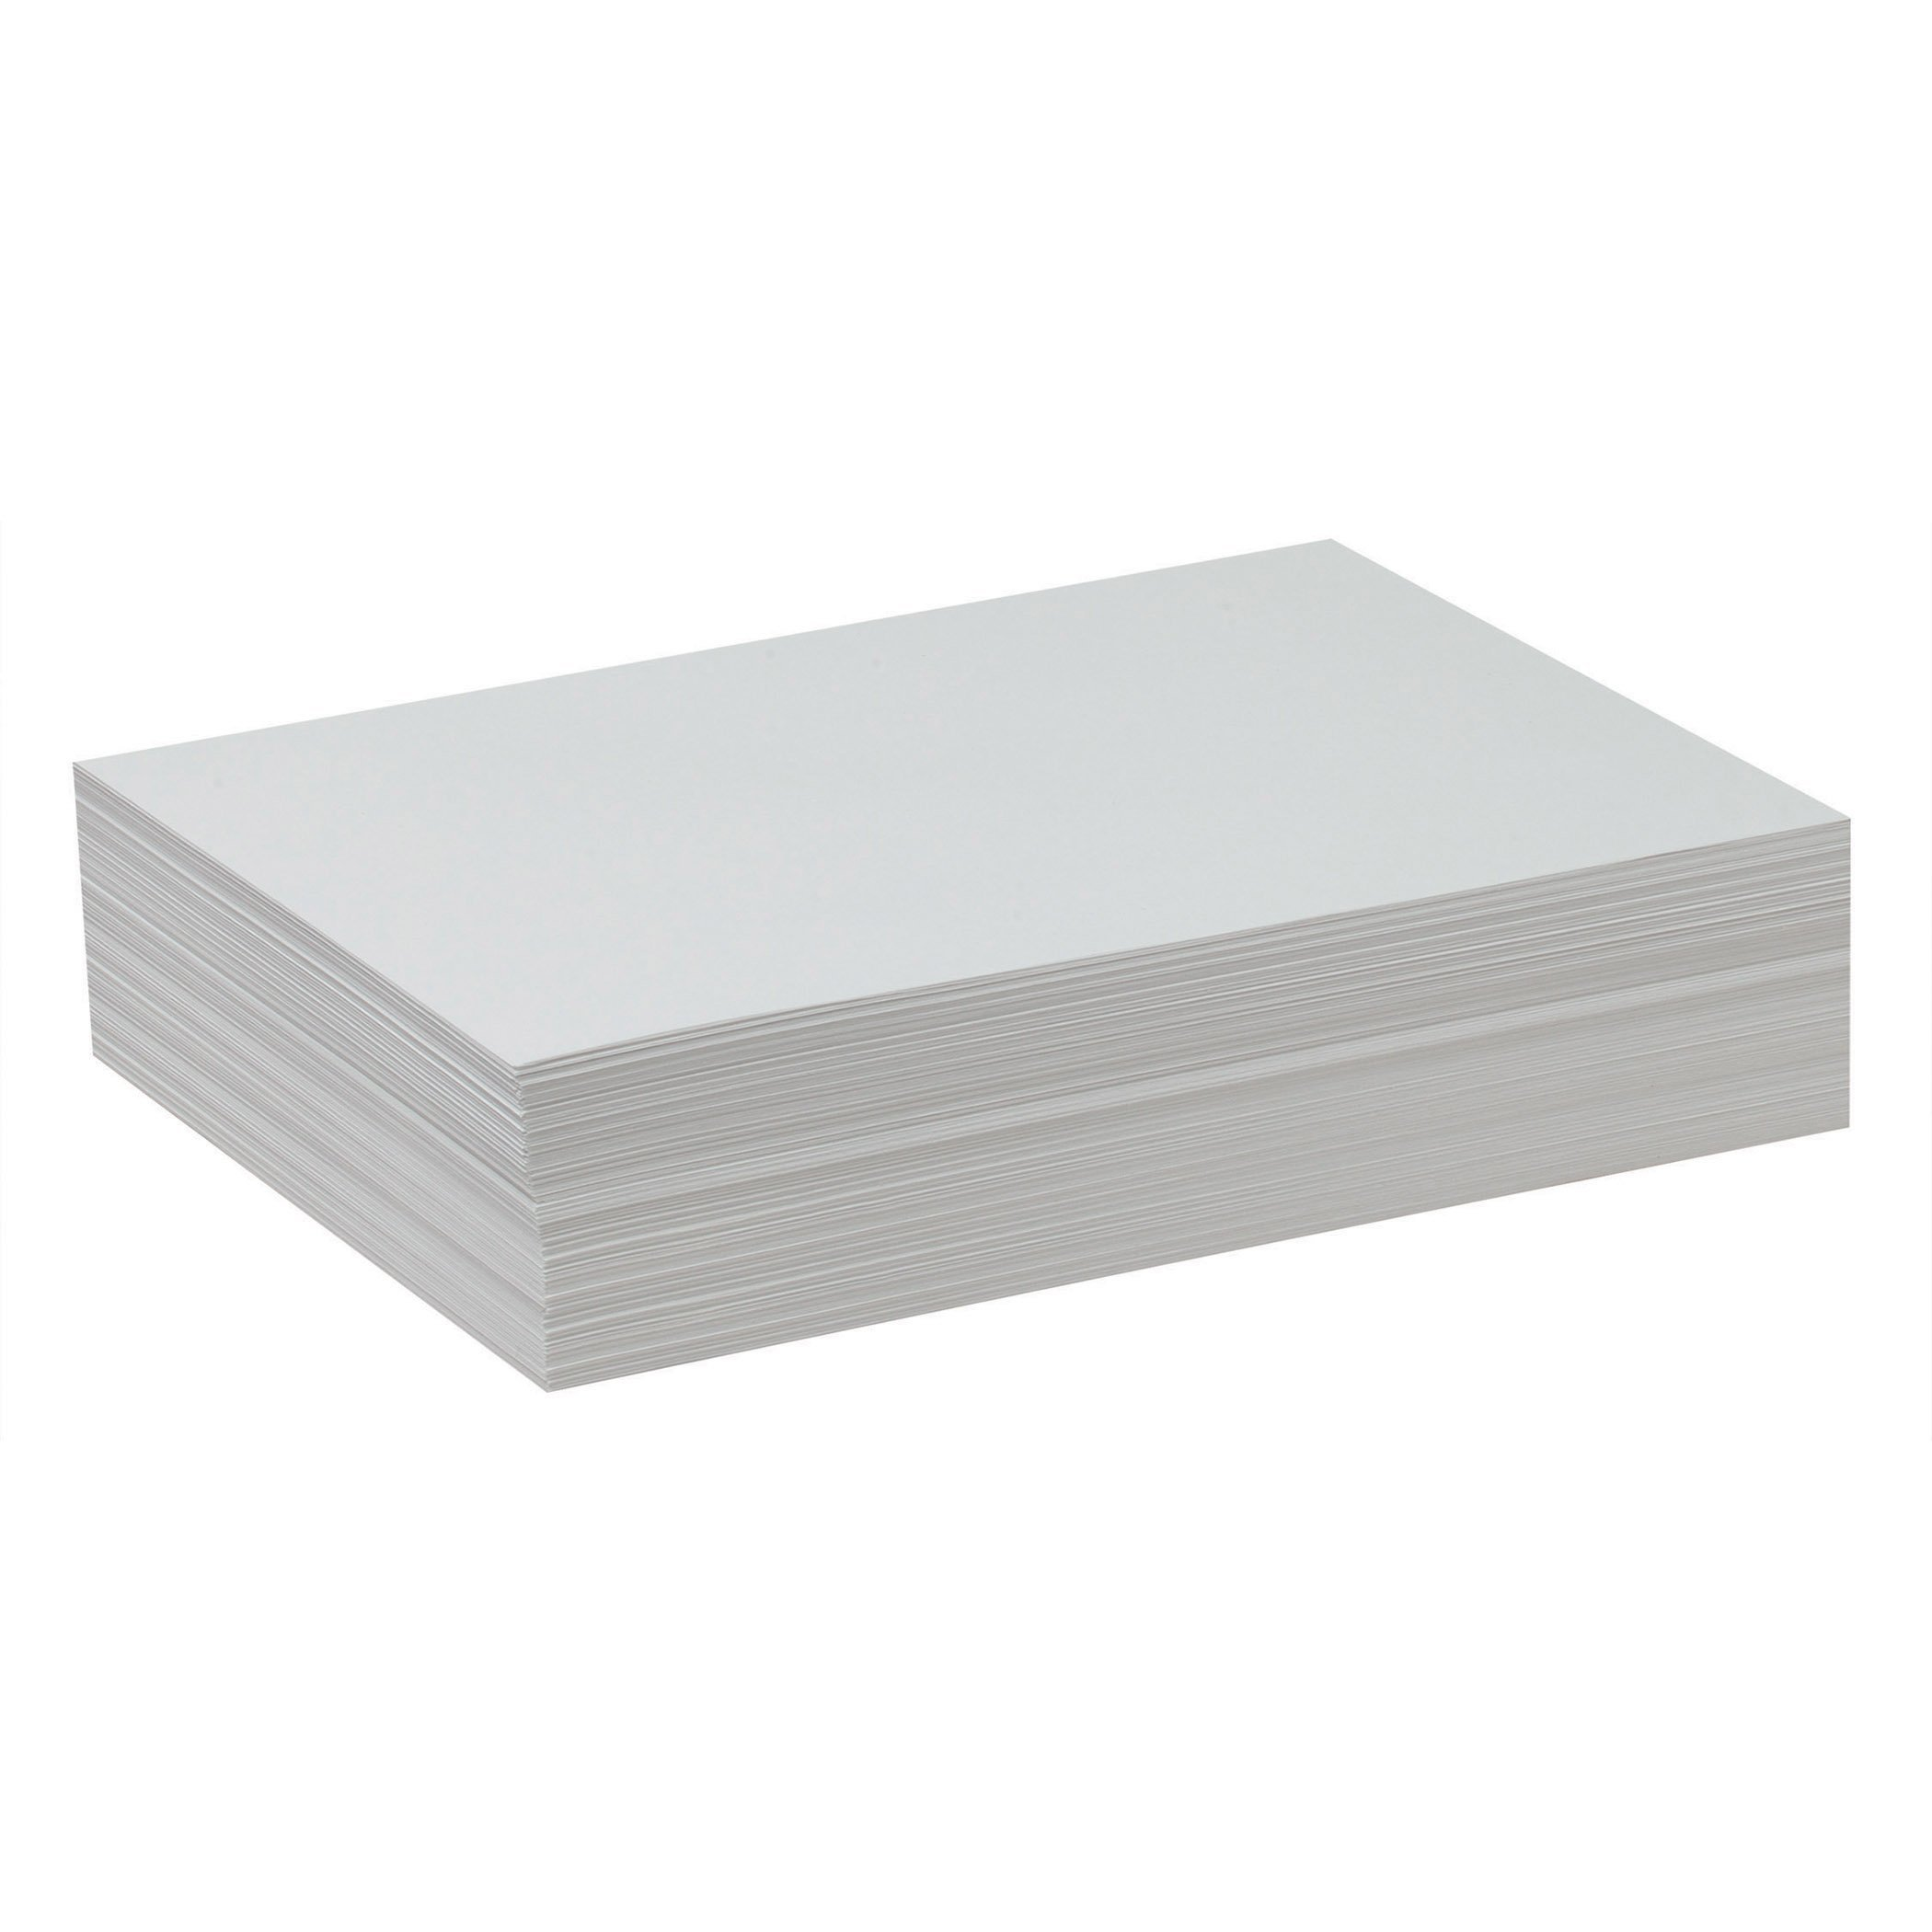 Pacon PAC4739BN Drawing Paper, White, Lightweight, 9'' x 12'', 500 Sheets Per Pack, 2 Packs